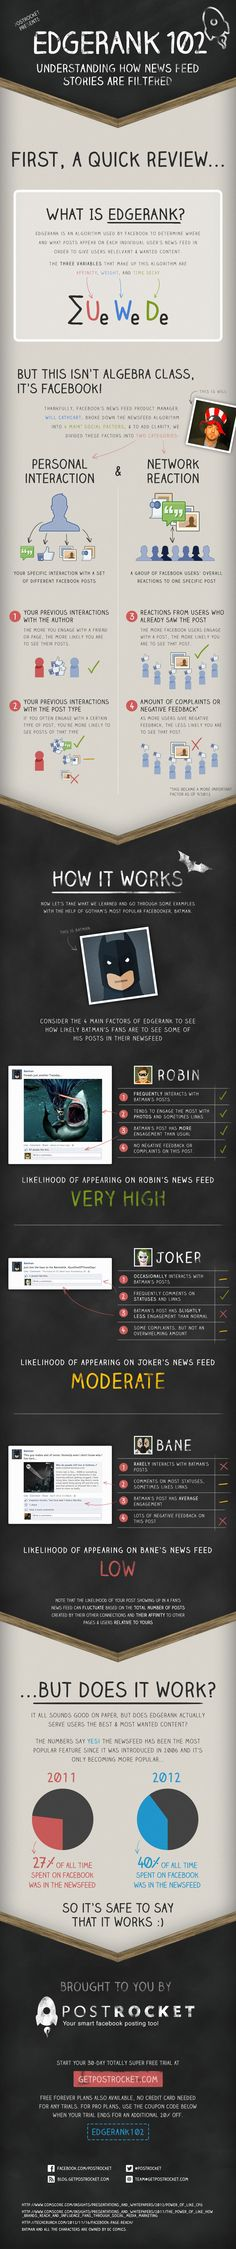 postrocket-facebook-edgerank-infographic